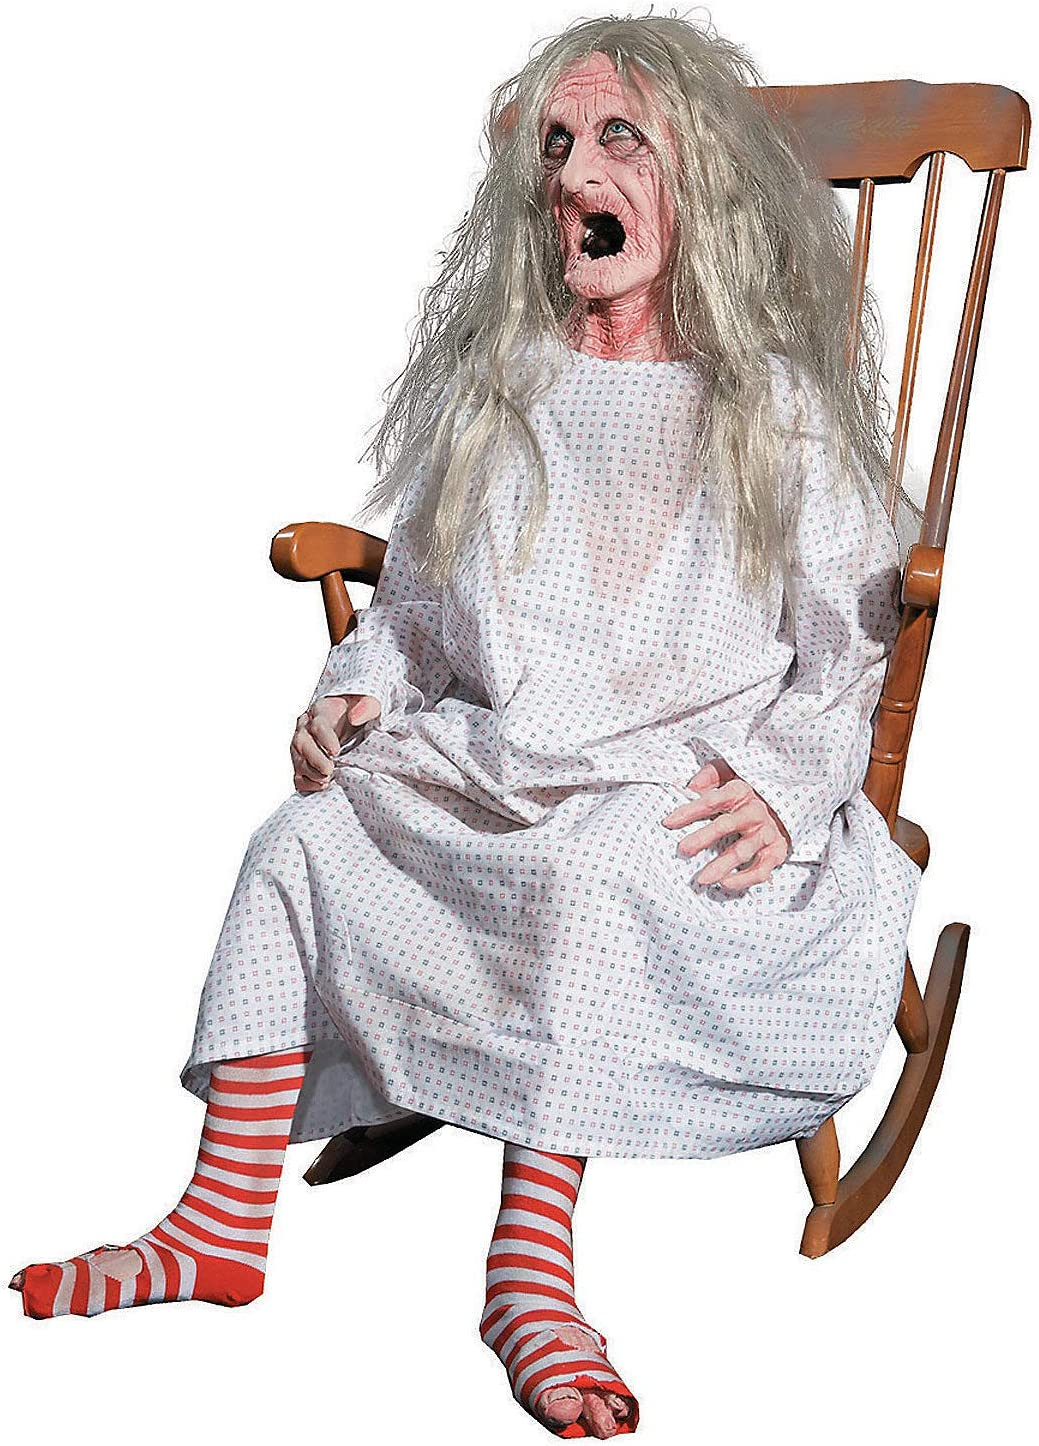 Fun Express - Rocking Granny Animated for Halloween - Home Decor - Decorative Accessories - Home Accents - Halloween - 1 Piece